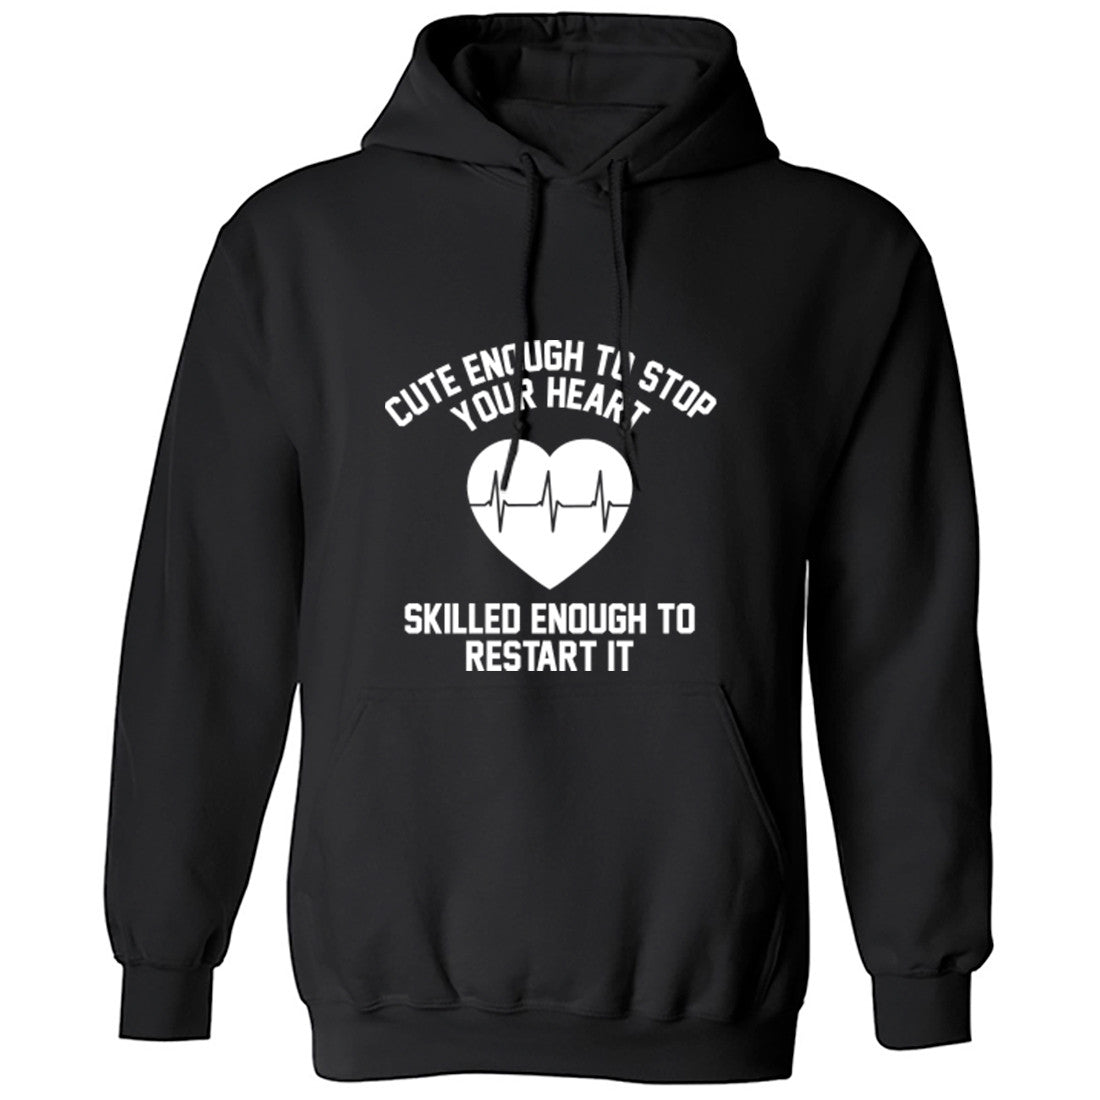 Cute Enough To Stop Your Heart Skilled Enough To Restart It Unisex Hoodie K0202